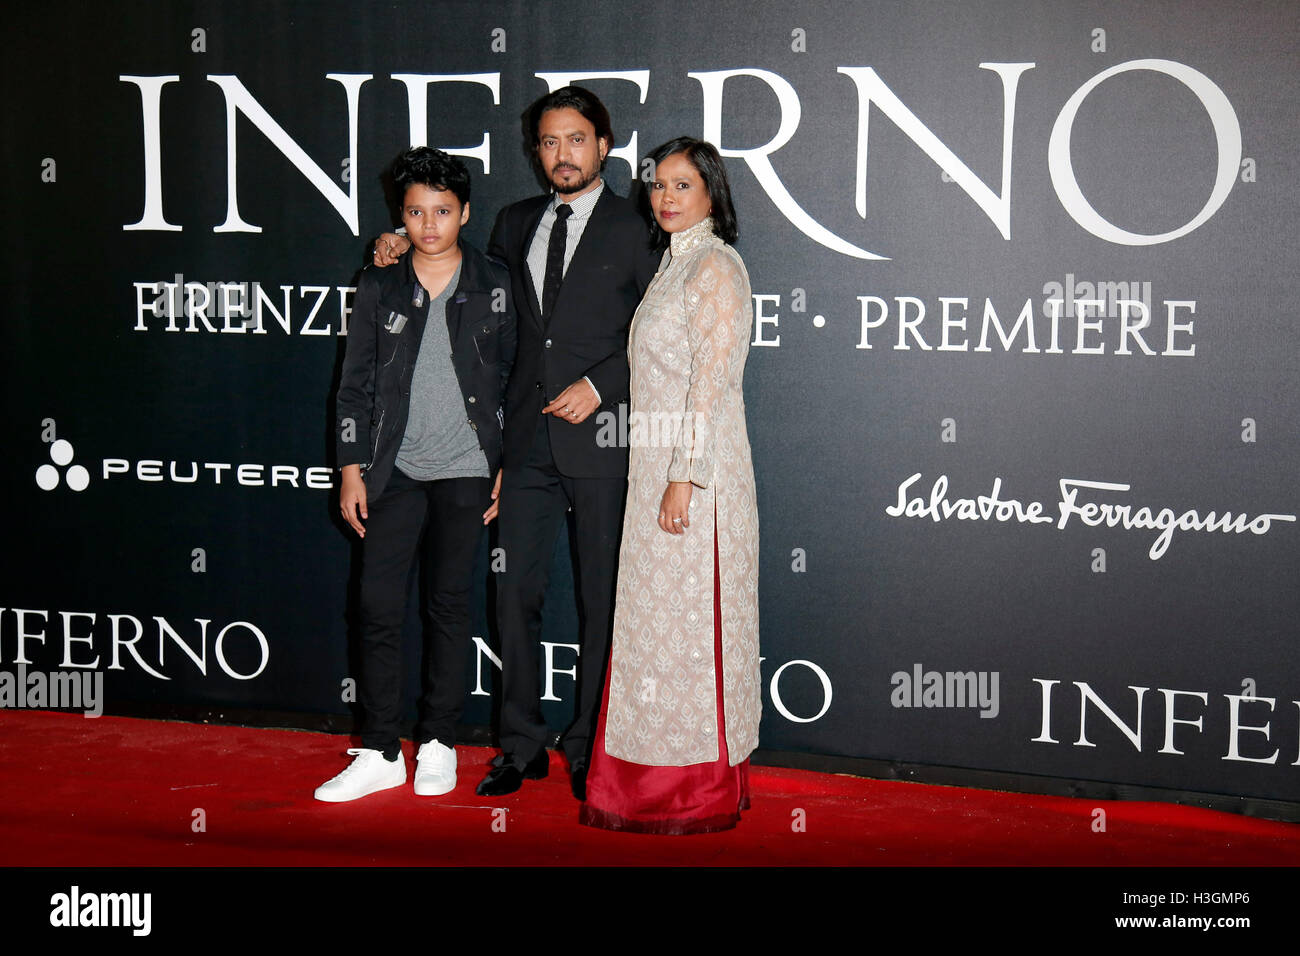 Florence, Italy. 8th October, 2016. Irrfan Khan with his wife and son Florence 8th October 2016. 'Inferno' - Stock Image